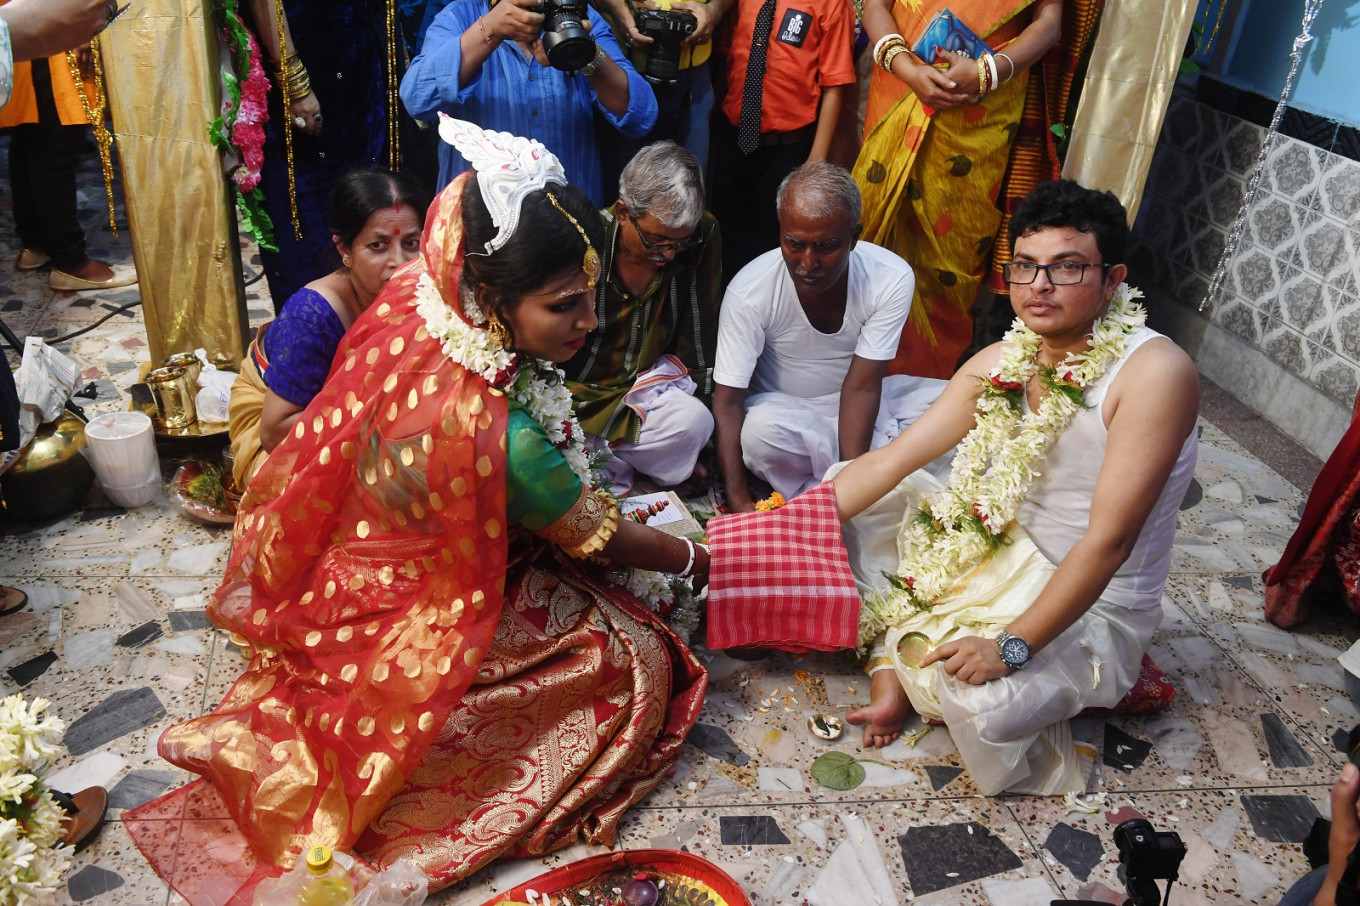 'Rainbow wedding': Indian transgender couple marry in emotional ceremony